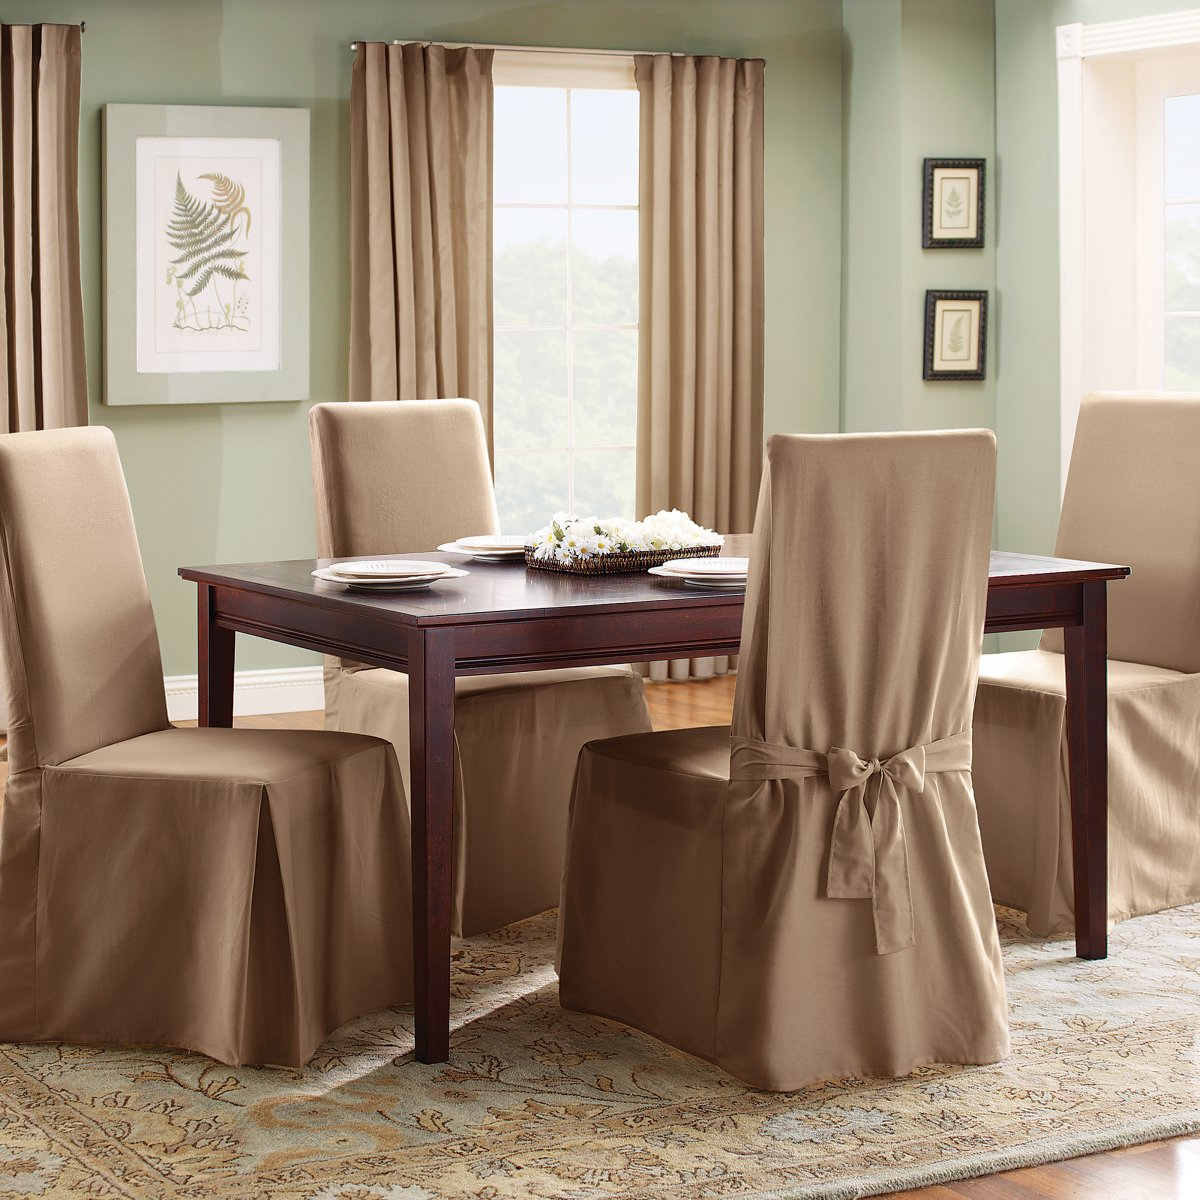 dining arm chair covers wicker basket slipcovers for room chairs that embellish your